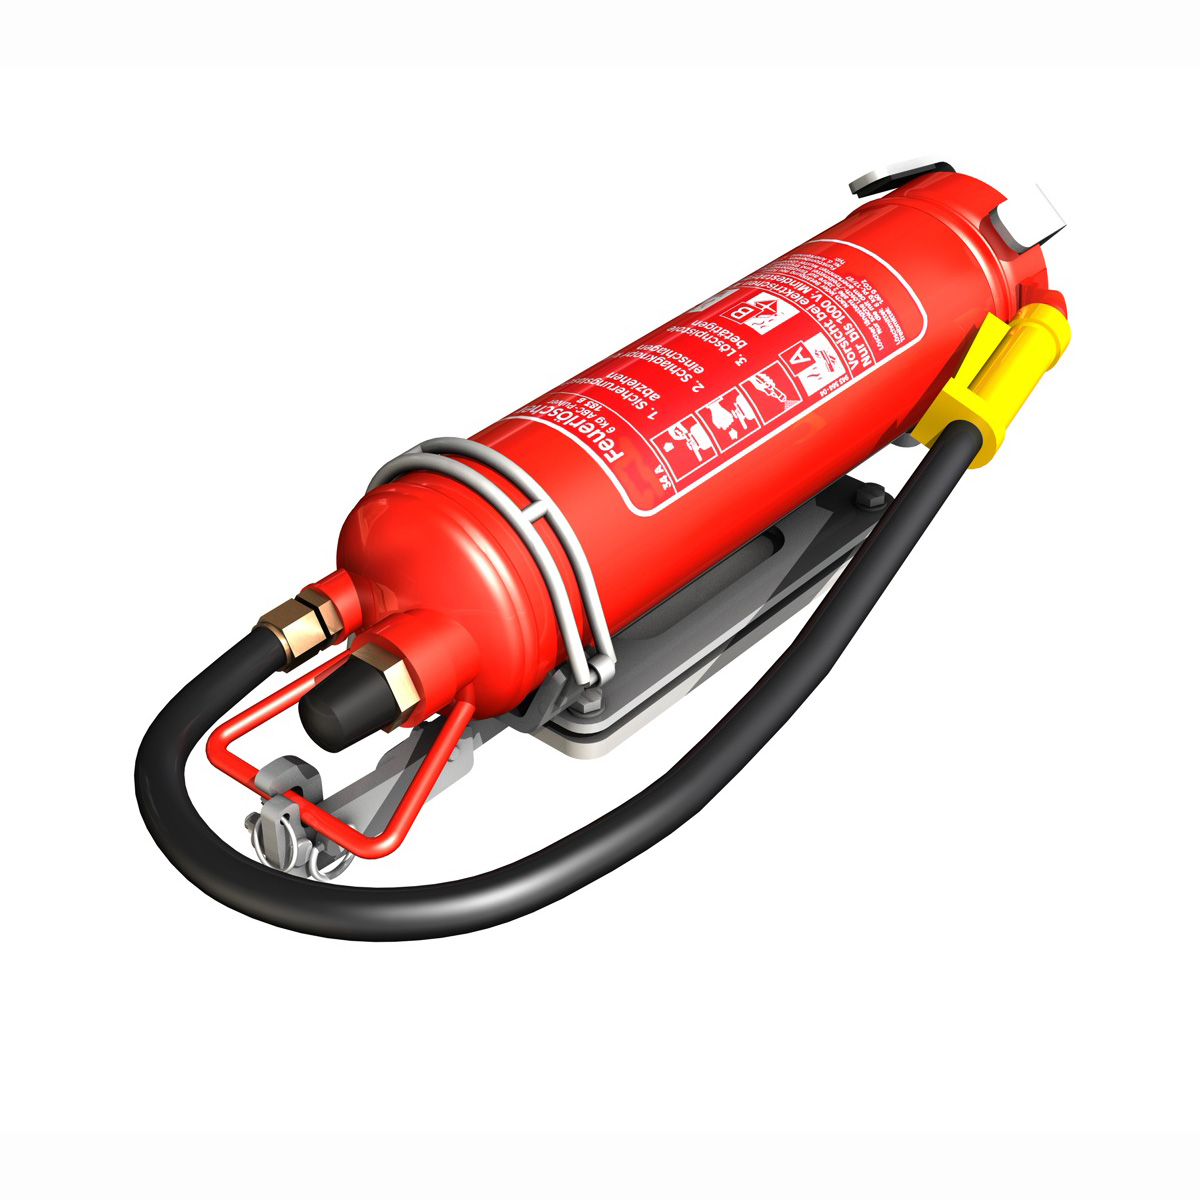 fire extinguisher with vehicle mounting 3d model 3ds fbx c4d lwo obj 188490